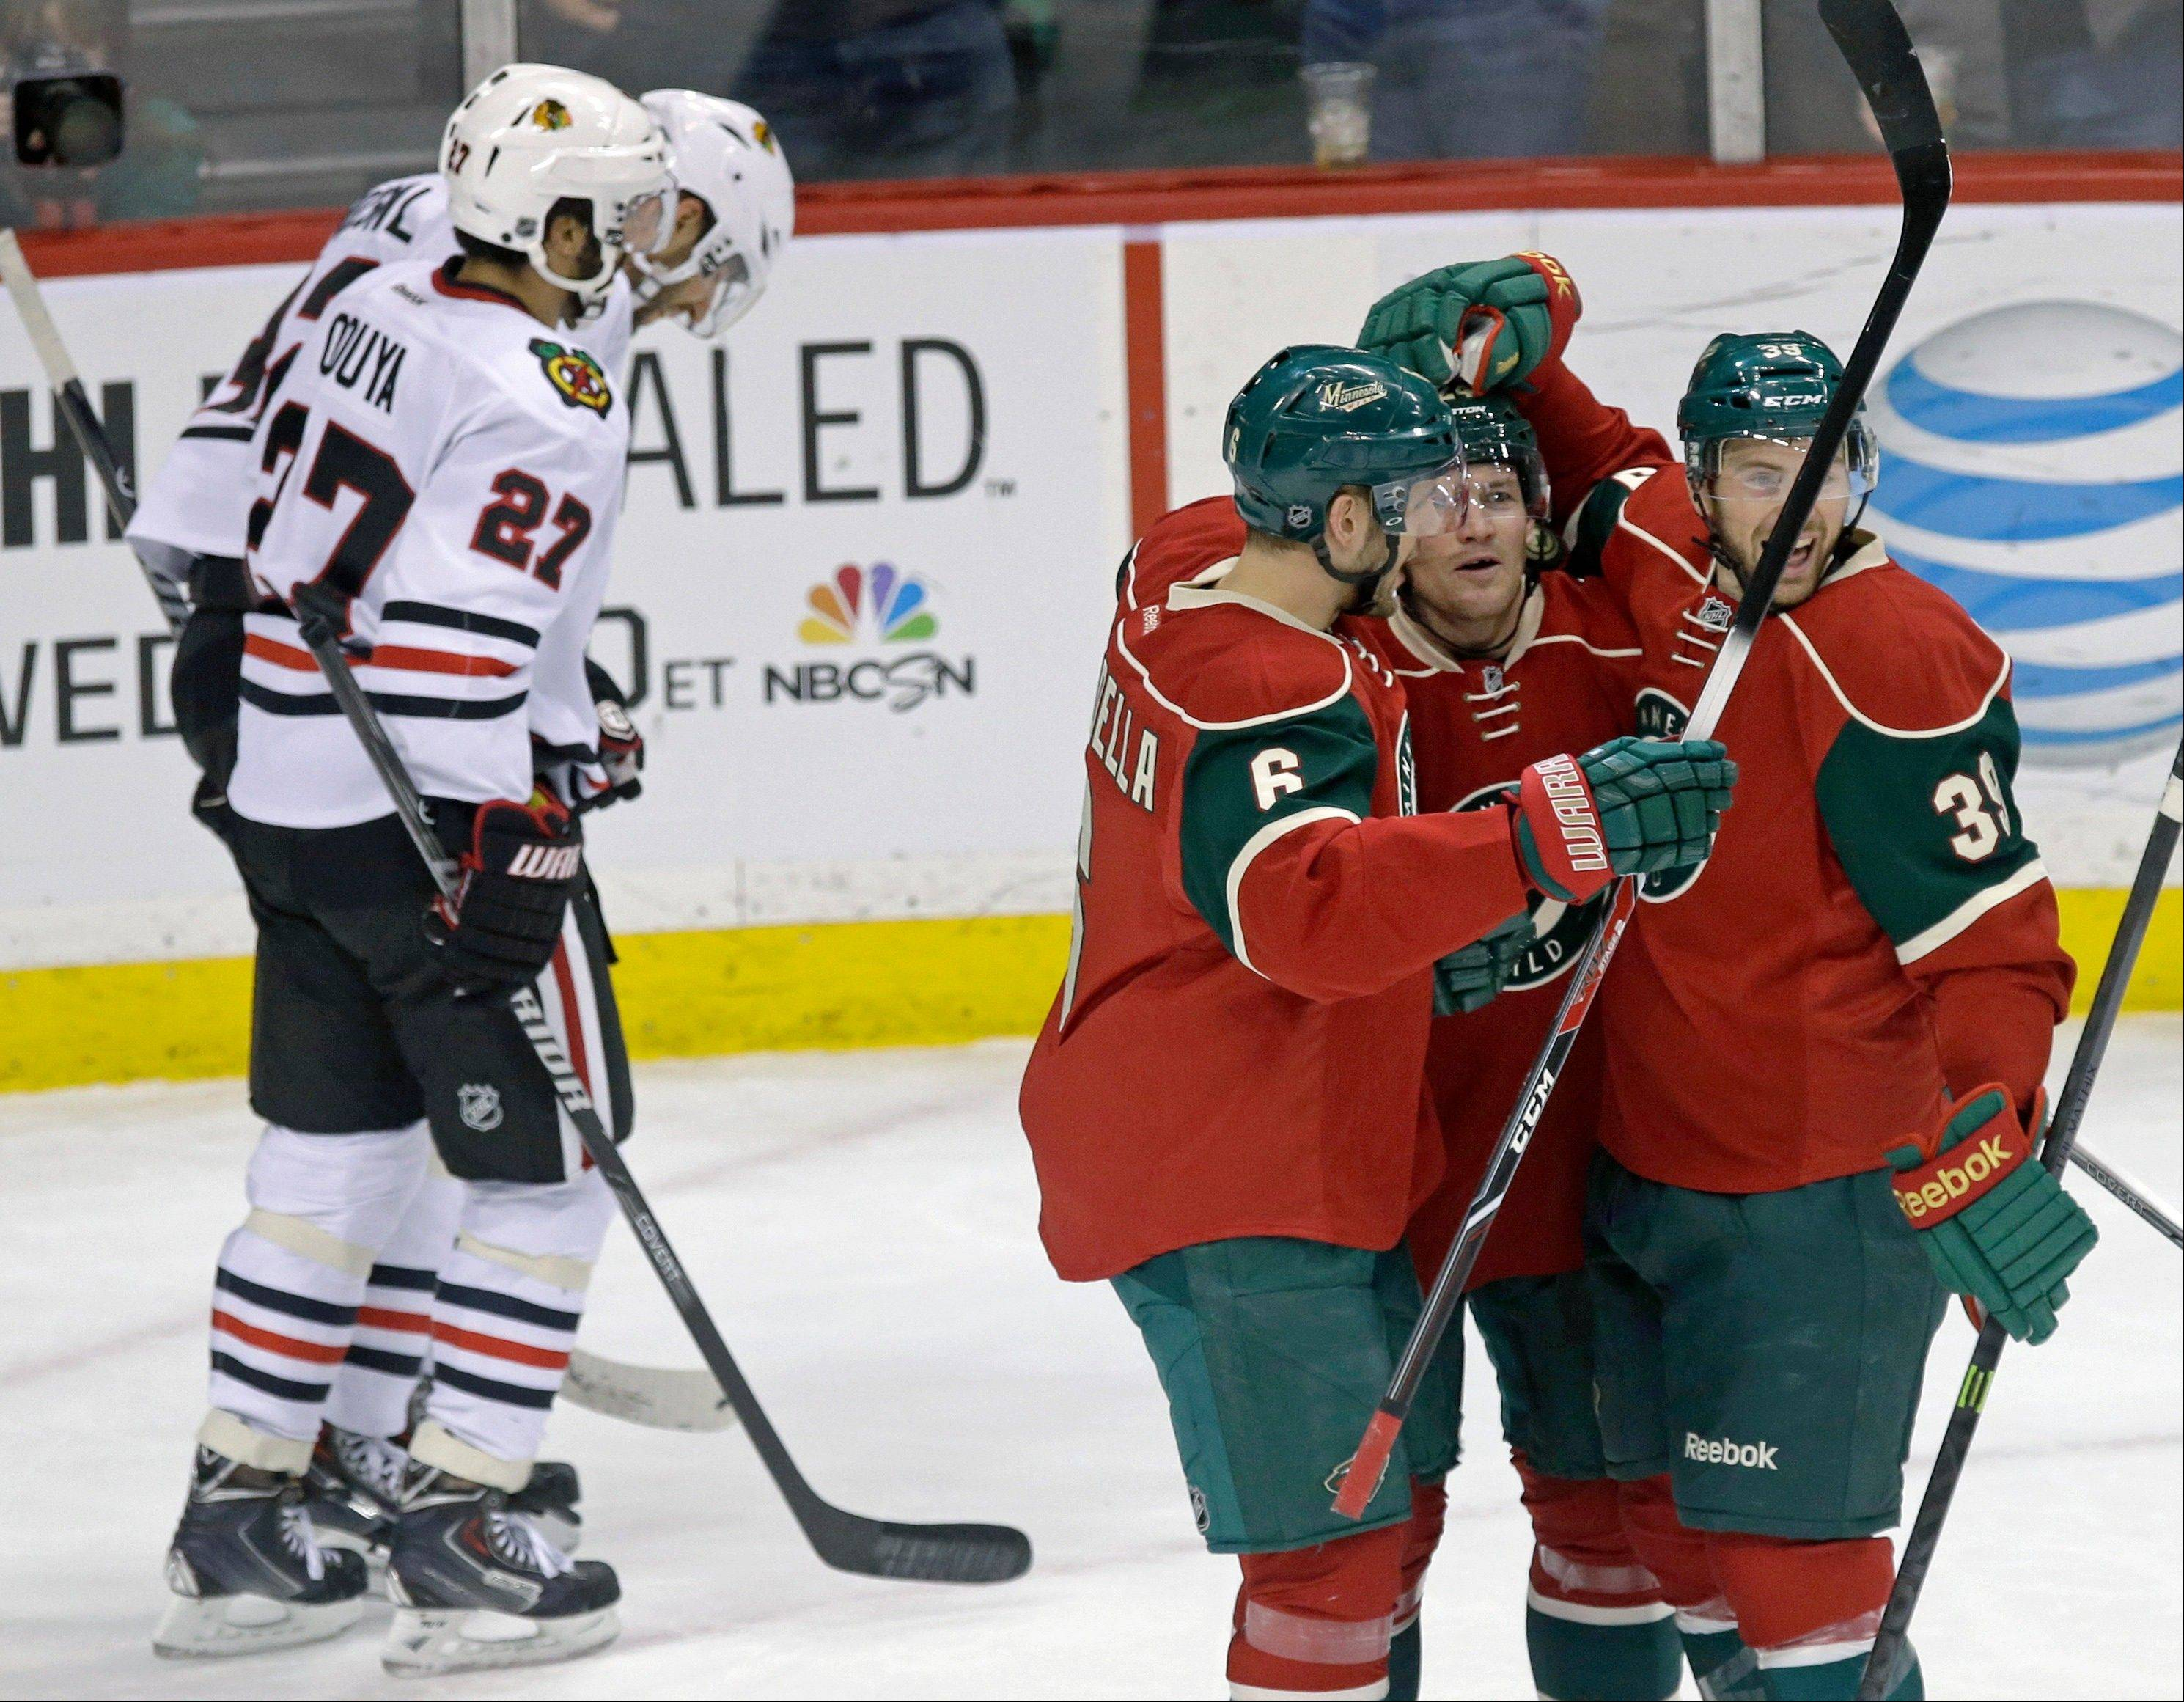 Minnesota Wild's Matt Cooke, right center, is congratulated on his goal by Marco Scandella and Nate Prosser, right, as Chicago Blackhawks' Johnny Oduya, left, of Sweden, and Michal Rozsival, skate to their bench in the first period of an NHL hockey game, Thursday, Jan. 23, 2014, in St. Paul, Minn.